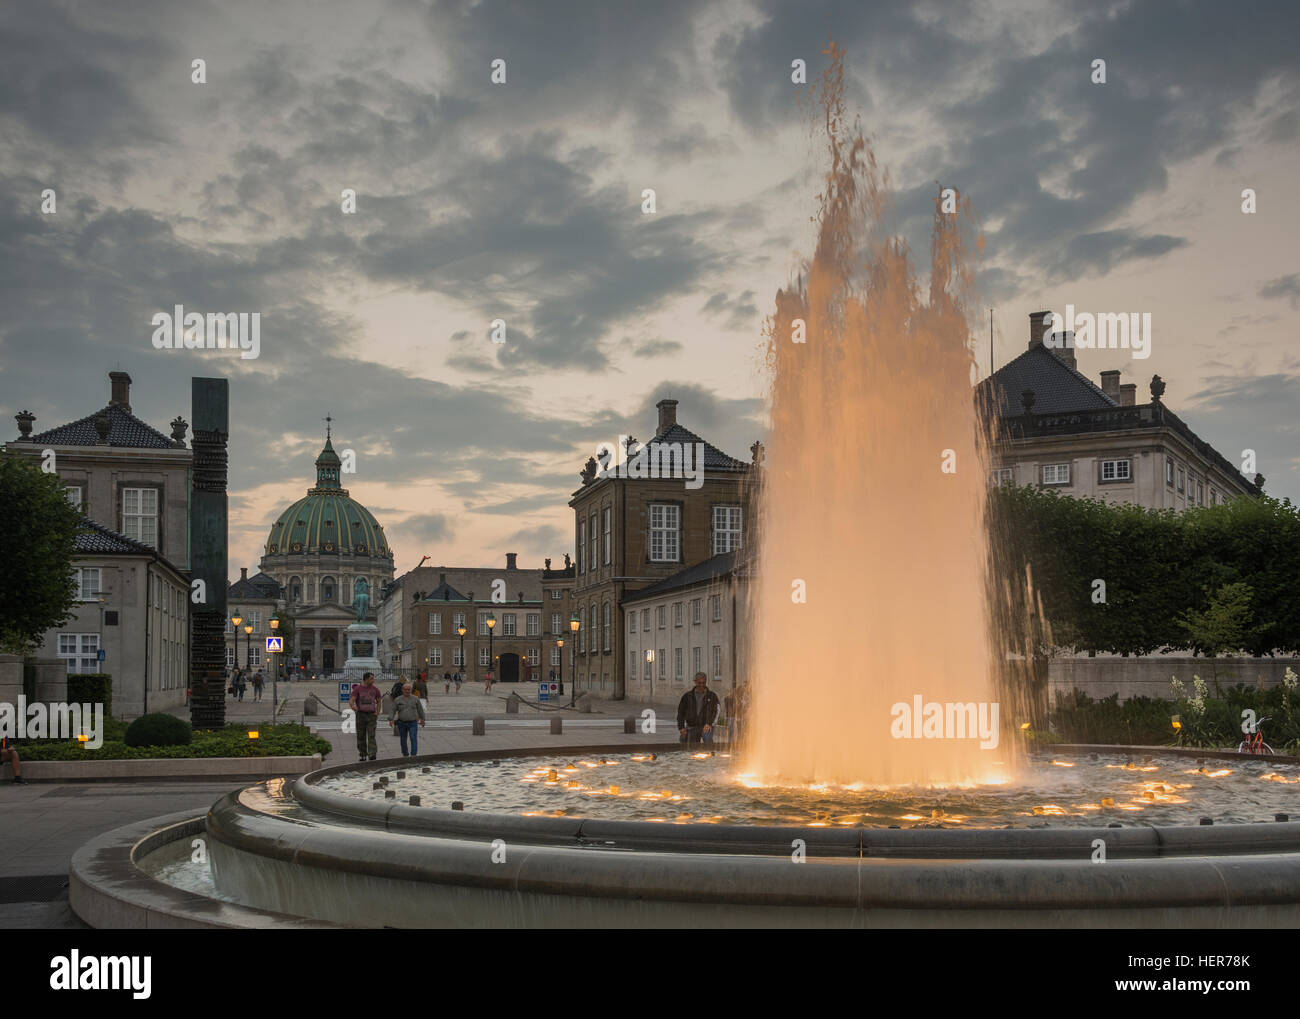 The fountains lit up at night at the Amalienborg in Copenhagen - Stock Image